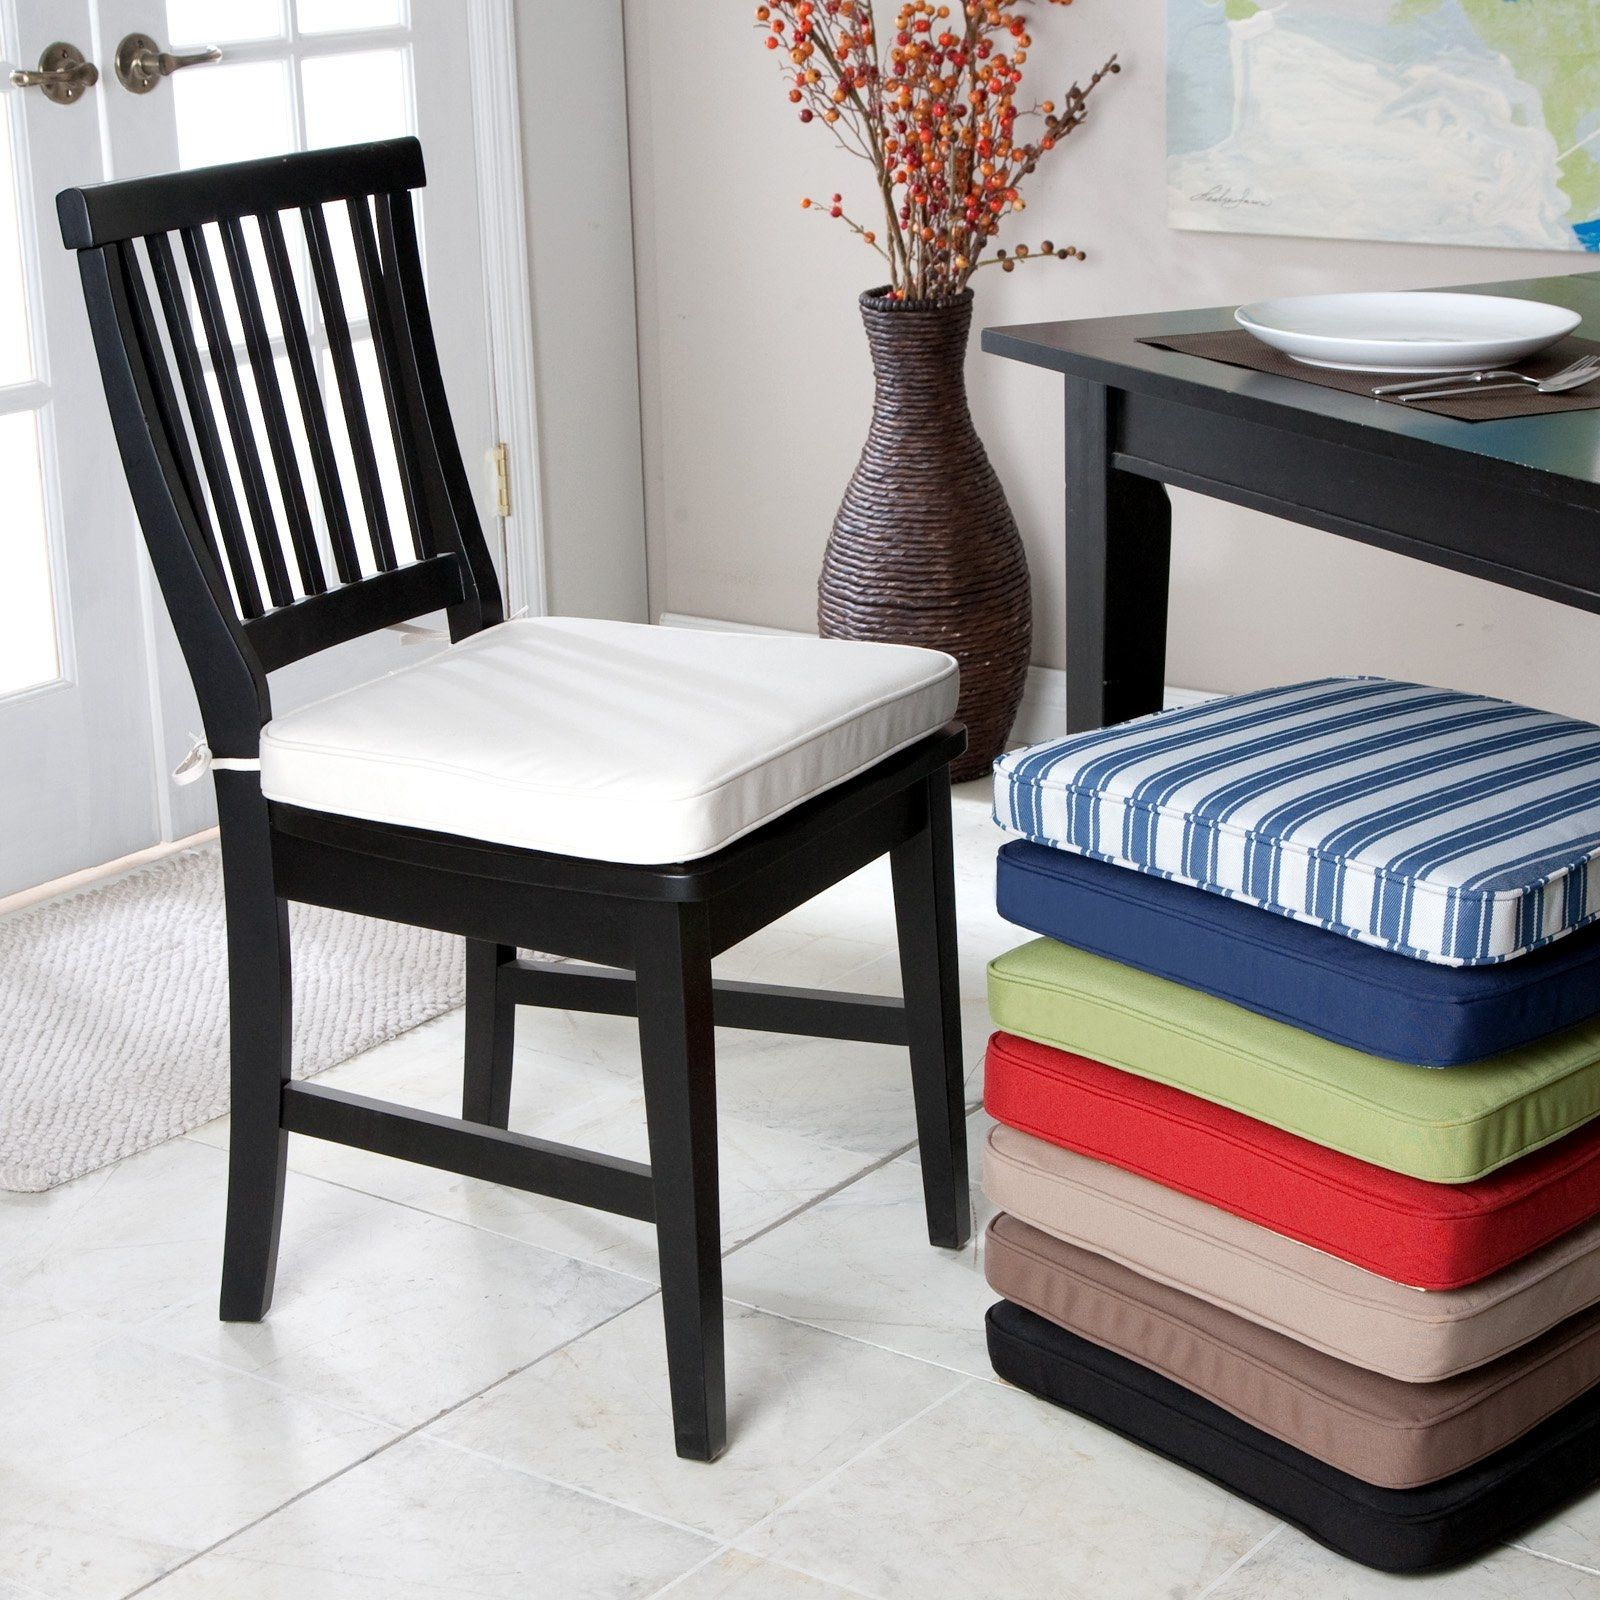 Padded Seat Covers For Kitchen Chairs White Dining Room